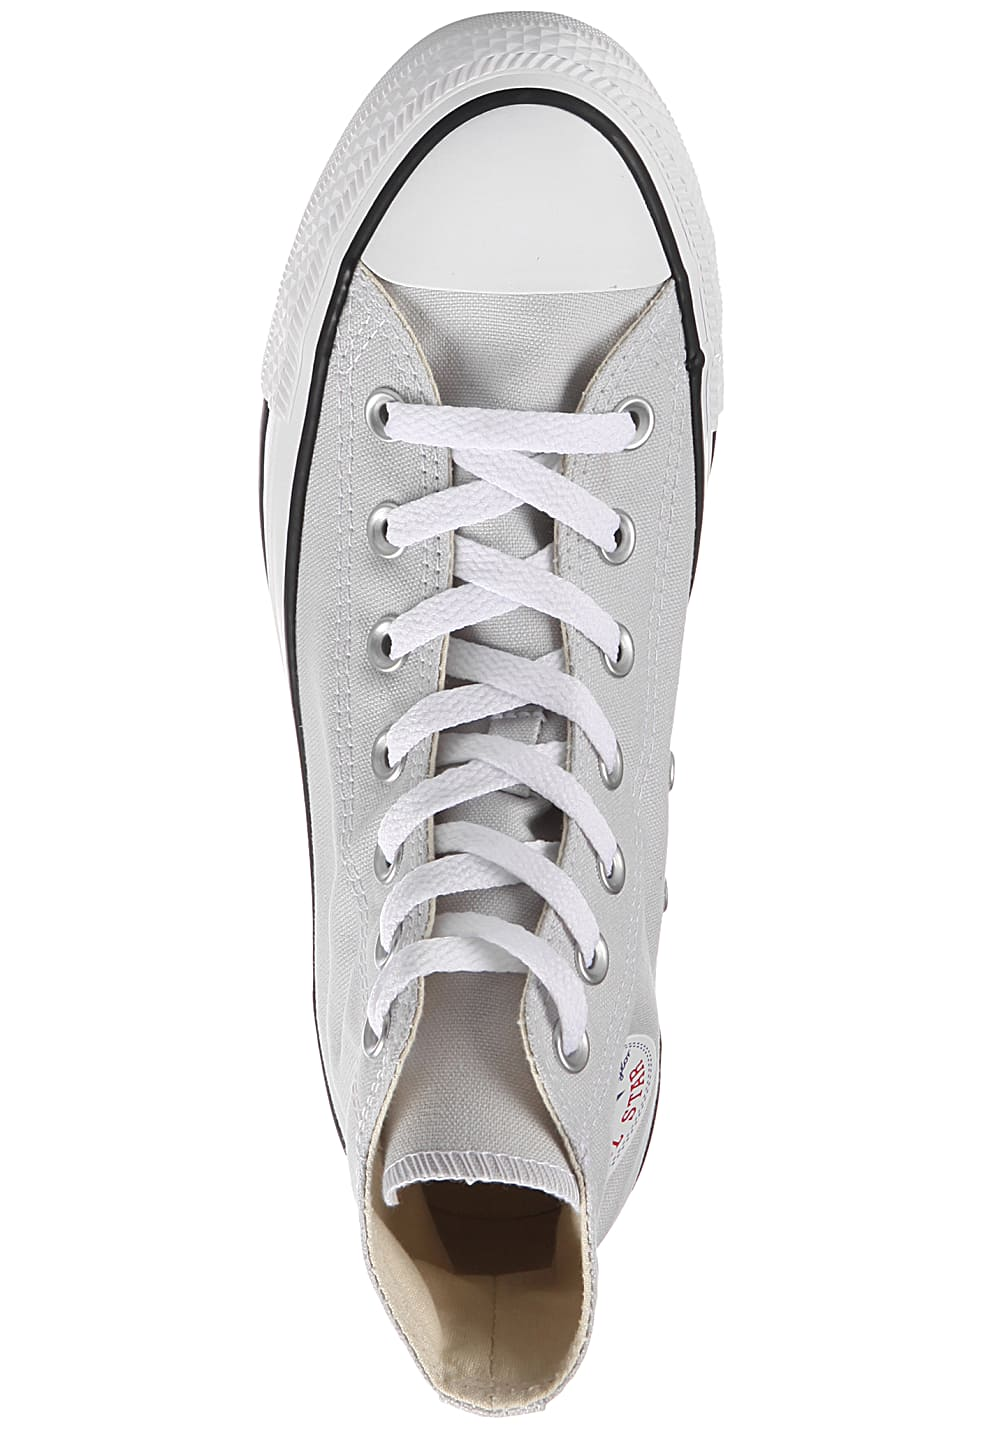 b1ea876f1be2 Next. -10%. This product is currently out of stock. Converse. Chuck Taylor  All Star Hi Mouse ...